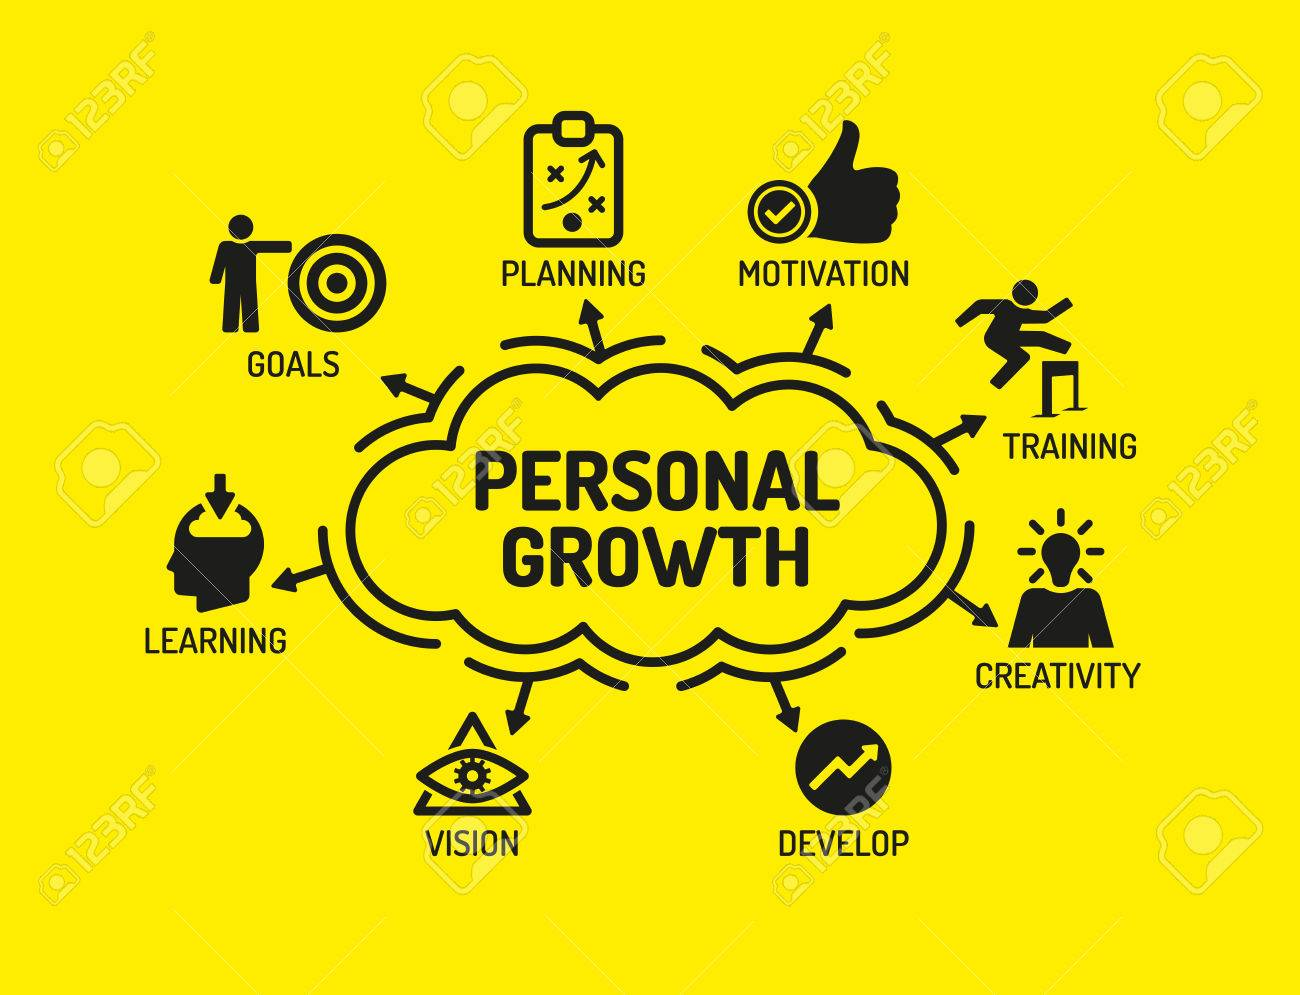 Personal Growth Chart With Keywords And Icons On Yellow Background